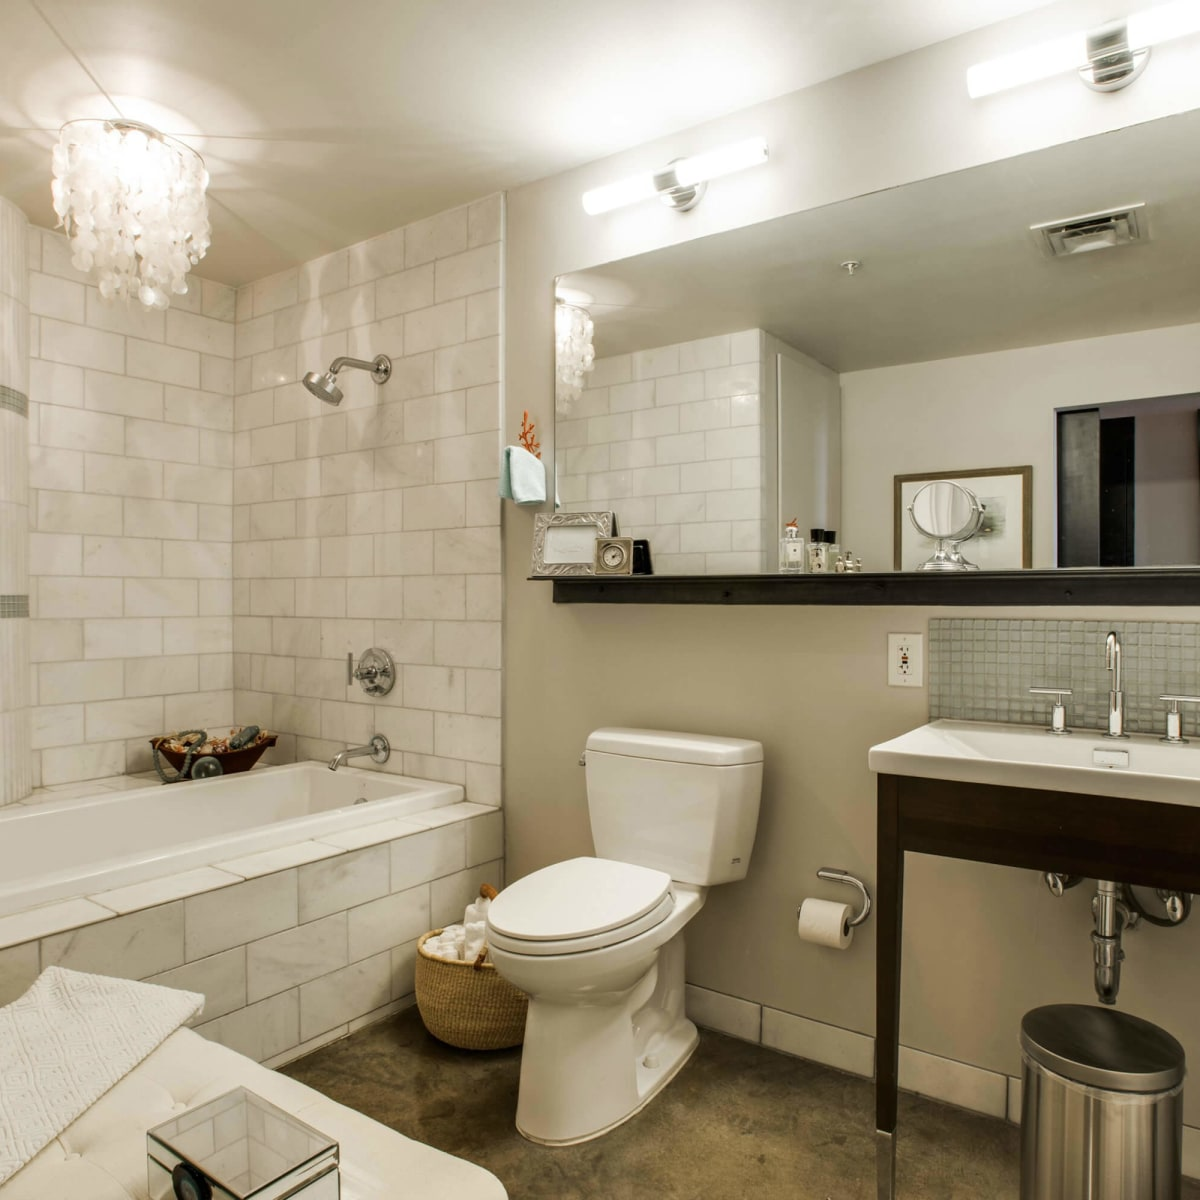 Bathroom at 1122 Jackson St. in Dallas